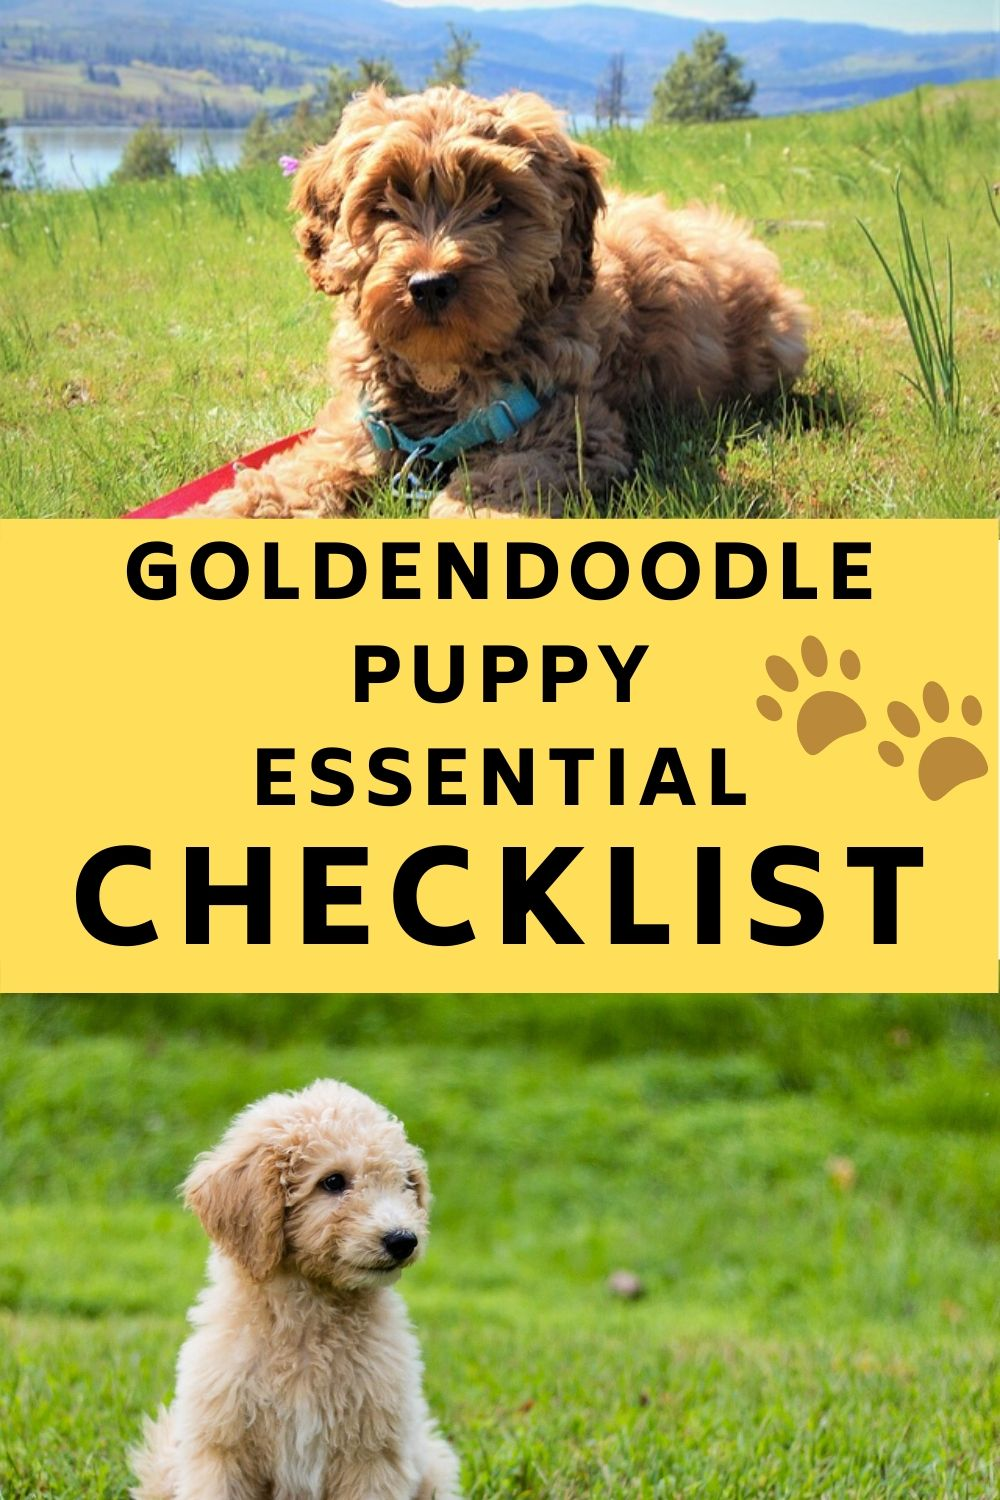 New Goldendoodle Puppy Checklist Complete Guide